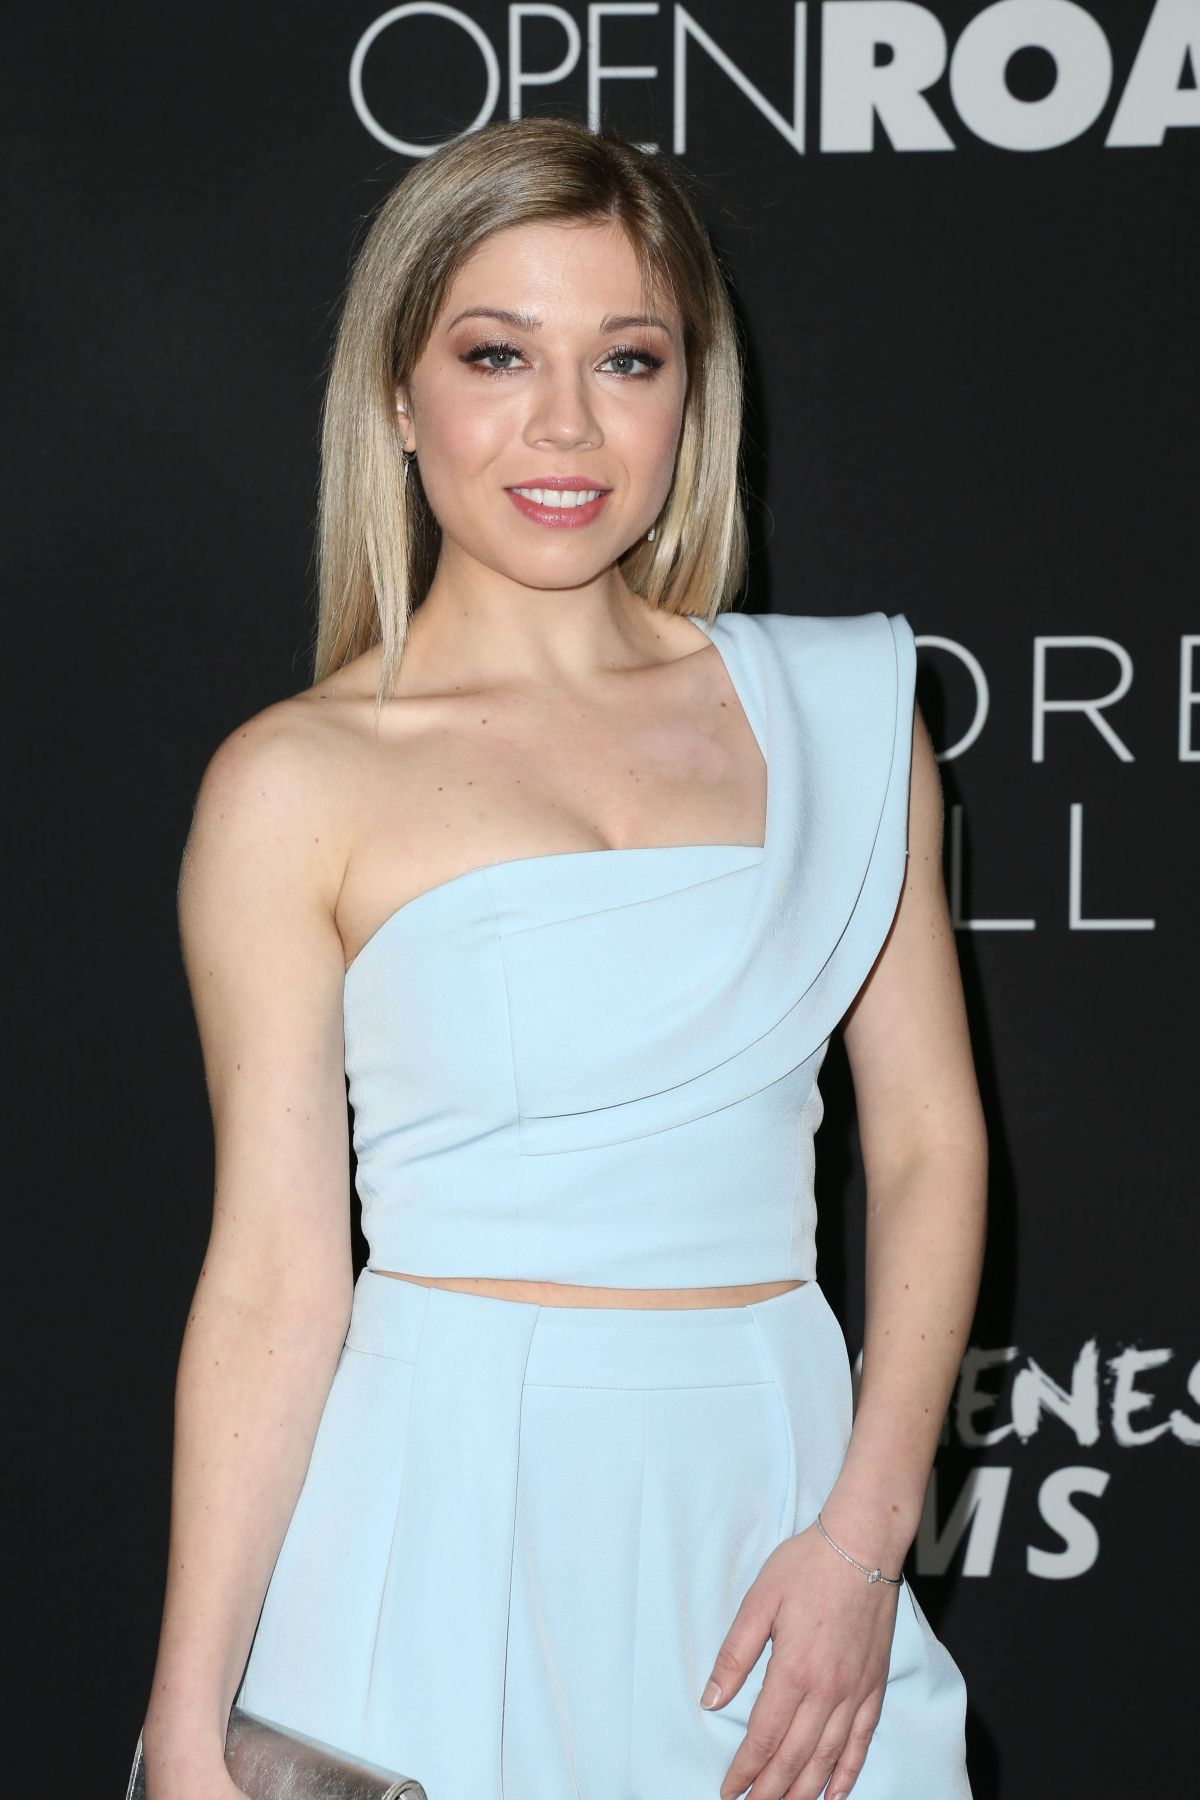 Jennette mccurdy at before i fall premiere in los angeles 0301 jennette mccurdy at before i fall premiere in los angeles 03012017 voltagebd Images